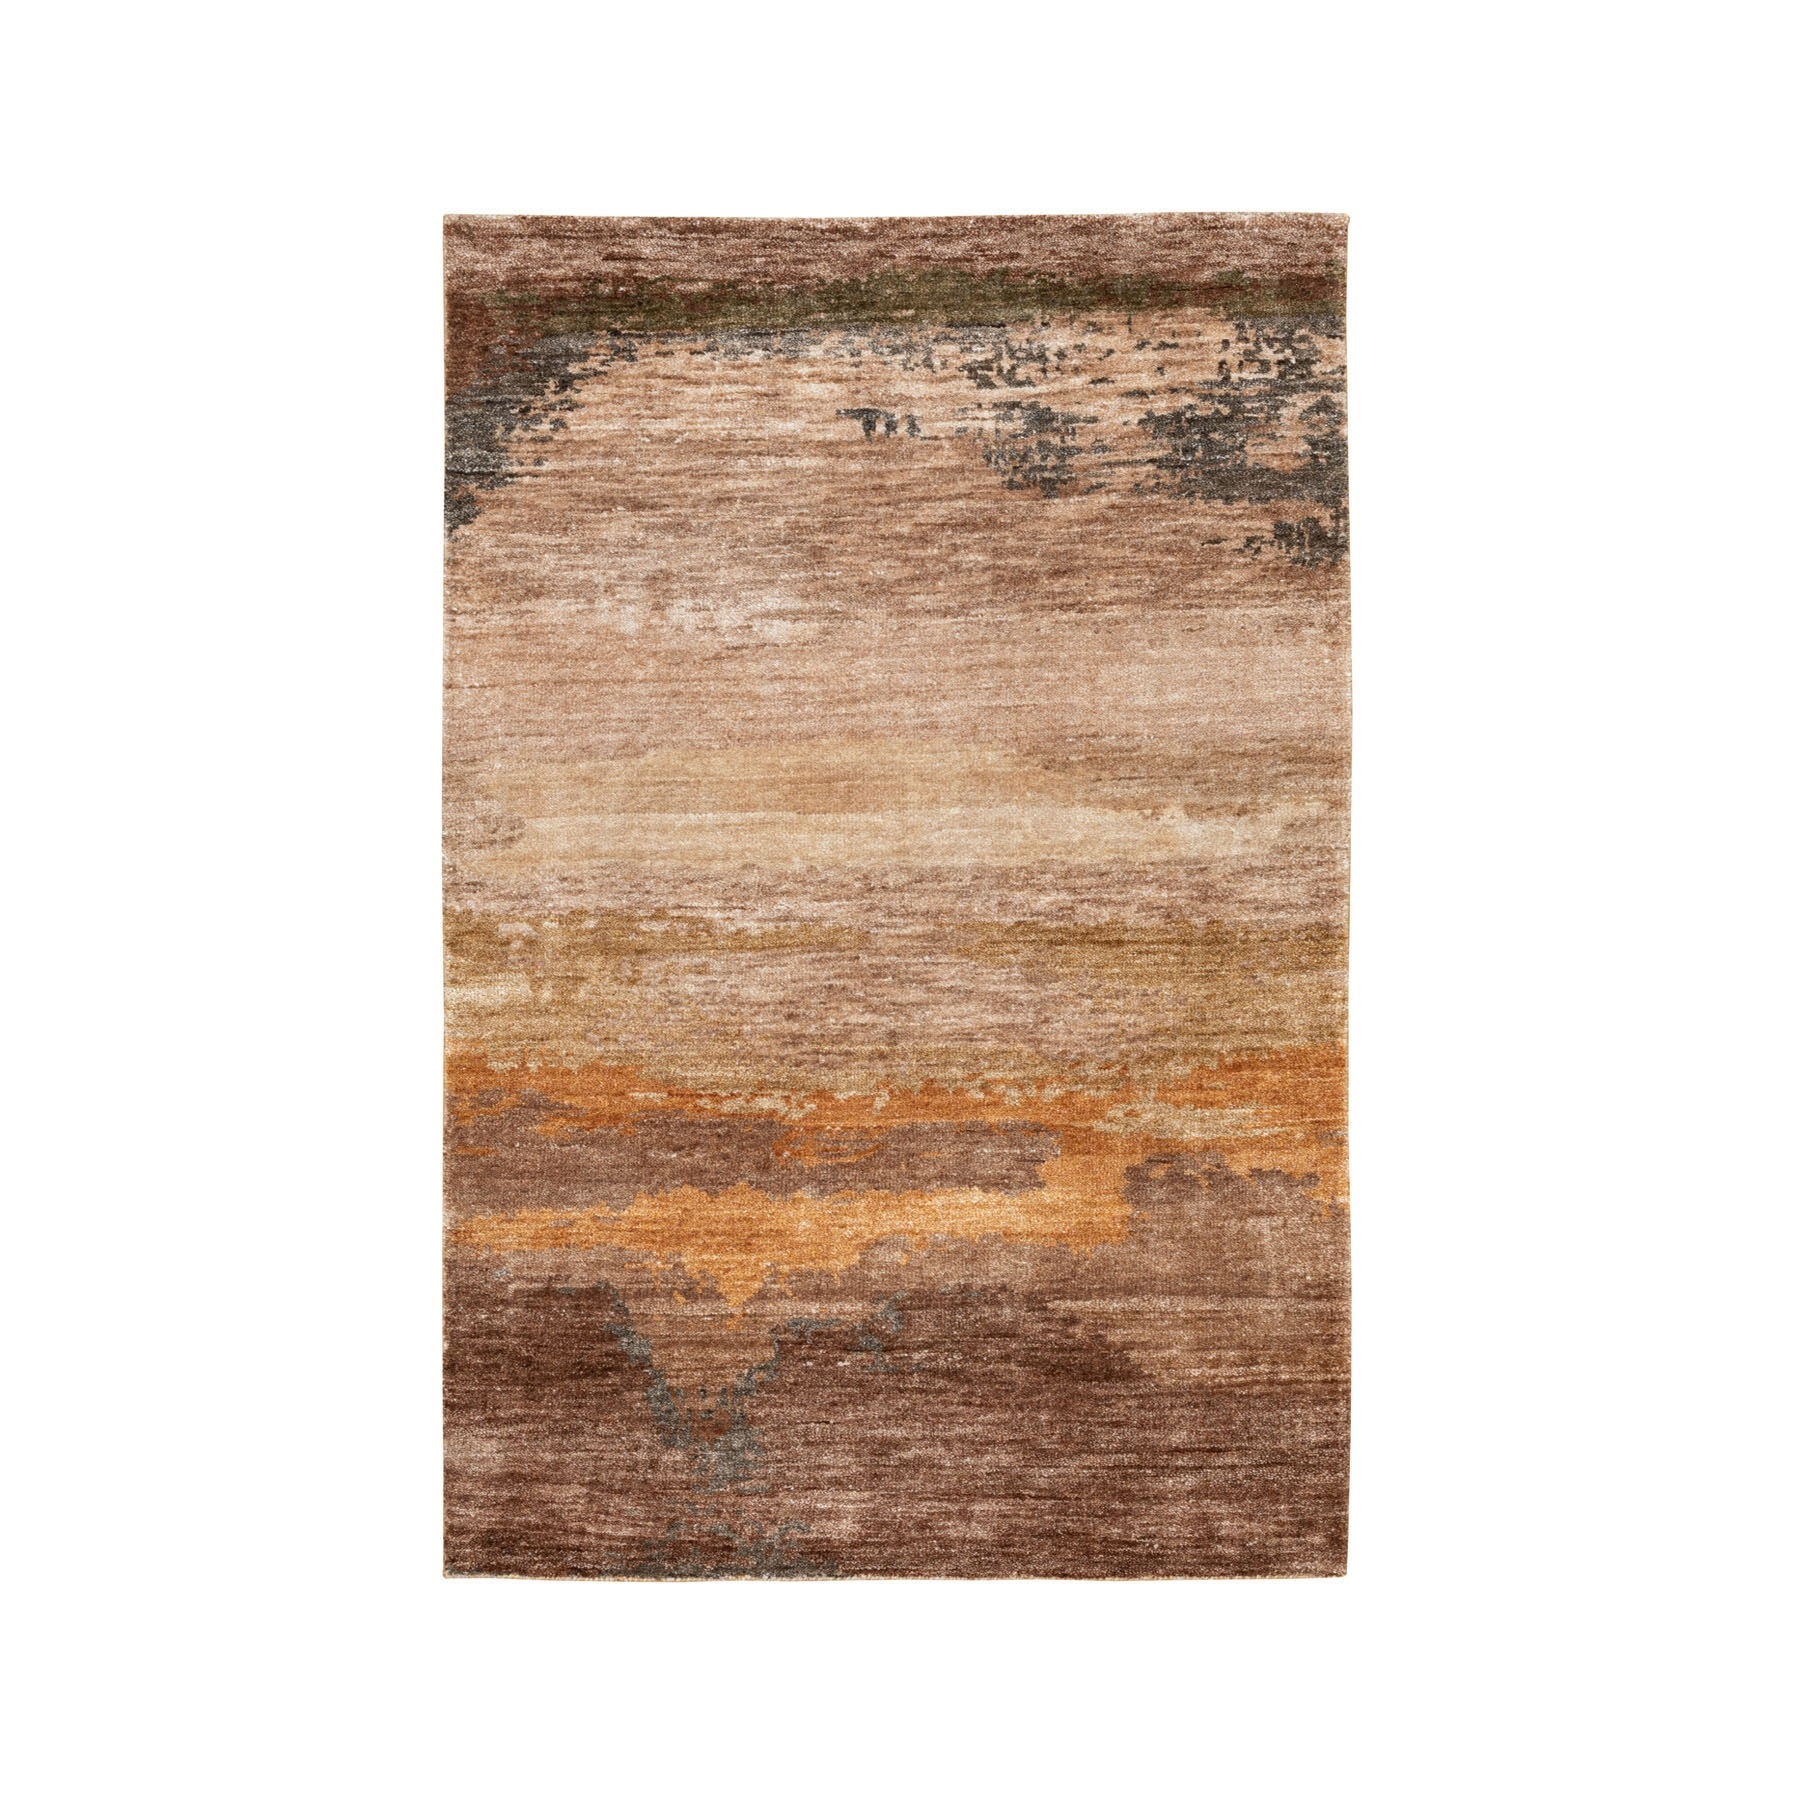 3'x5' Earth Tone Colors Abstract Design Wool And Silk Hand Knotted Modern Oriental Rug